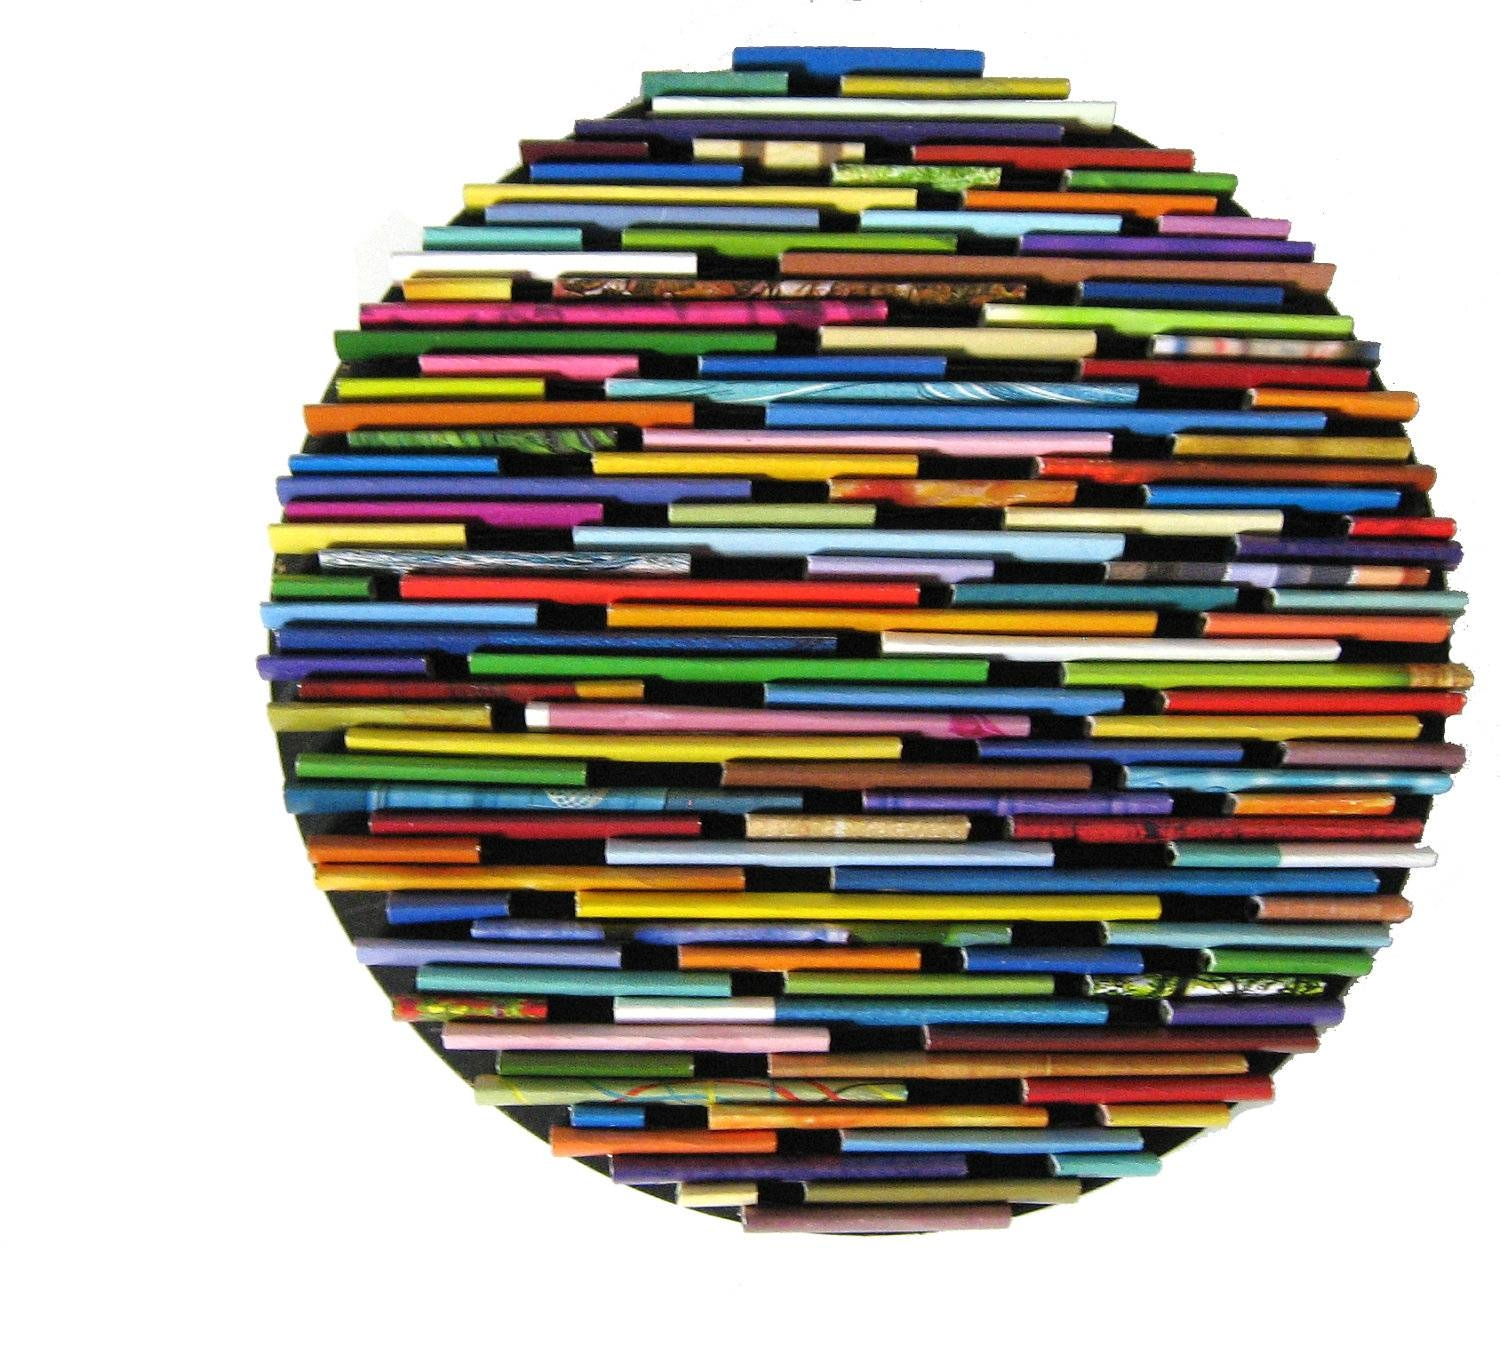 Round Wall Art Made From Recycled Magazines Colorful Unique Intended For Most Up To Date Recycled Wall Art (View 25 of 30)